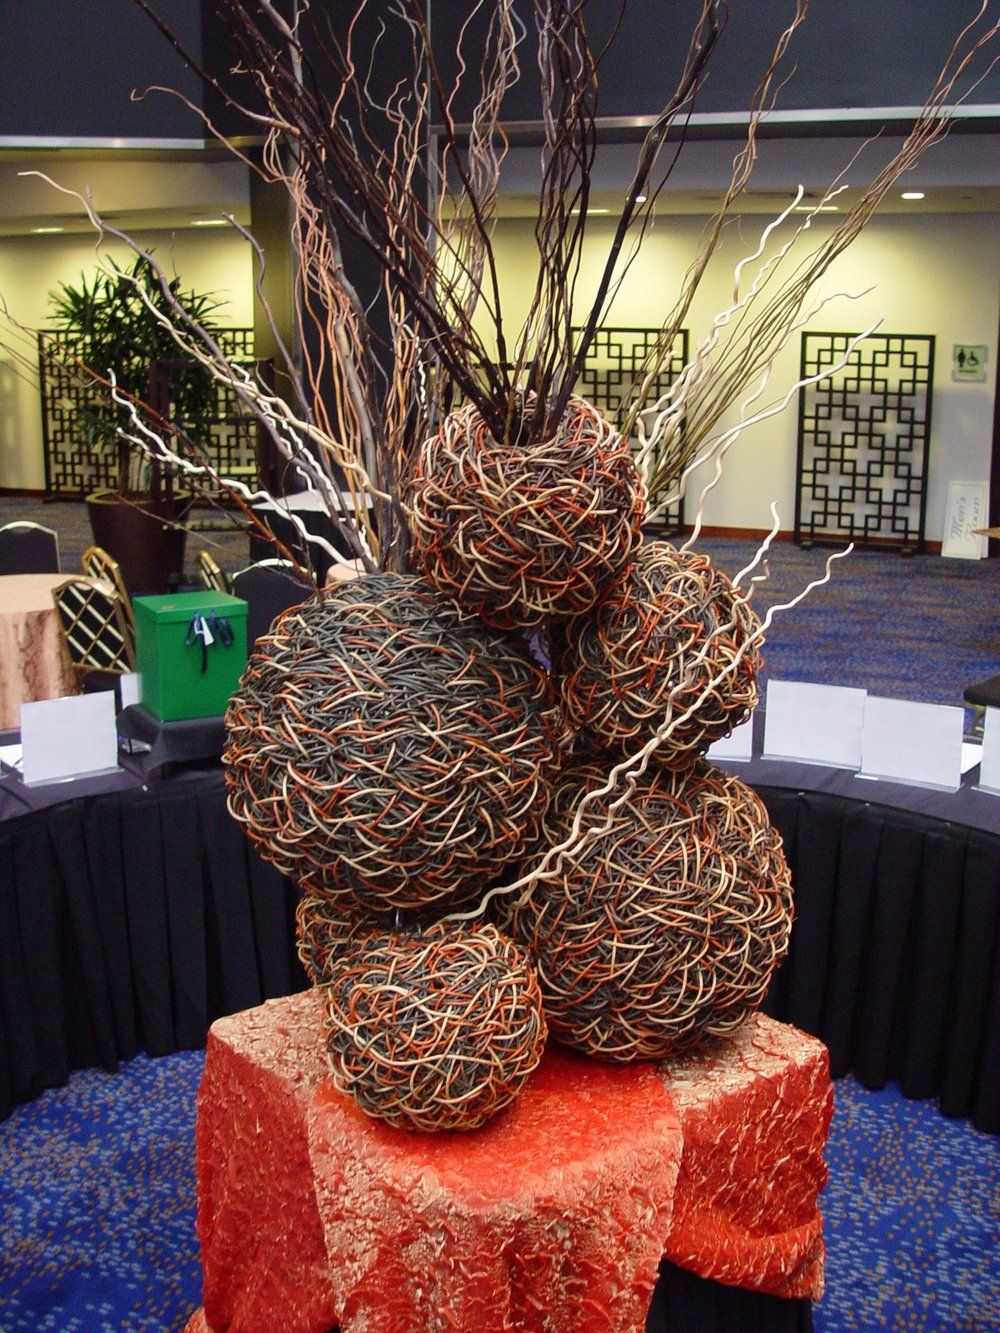 Natural+sphere+sculptural+table+display+-+NJ+NYC+event+decor+from+Eggsotic+Events.jpg